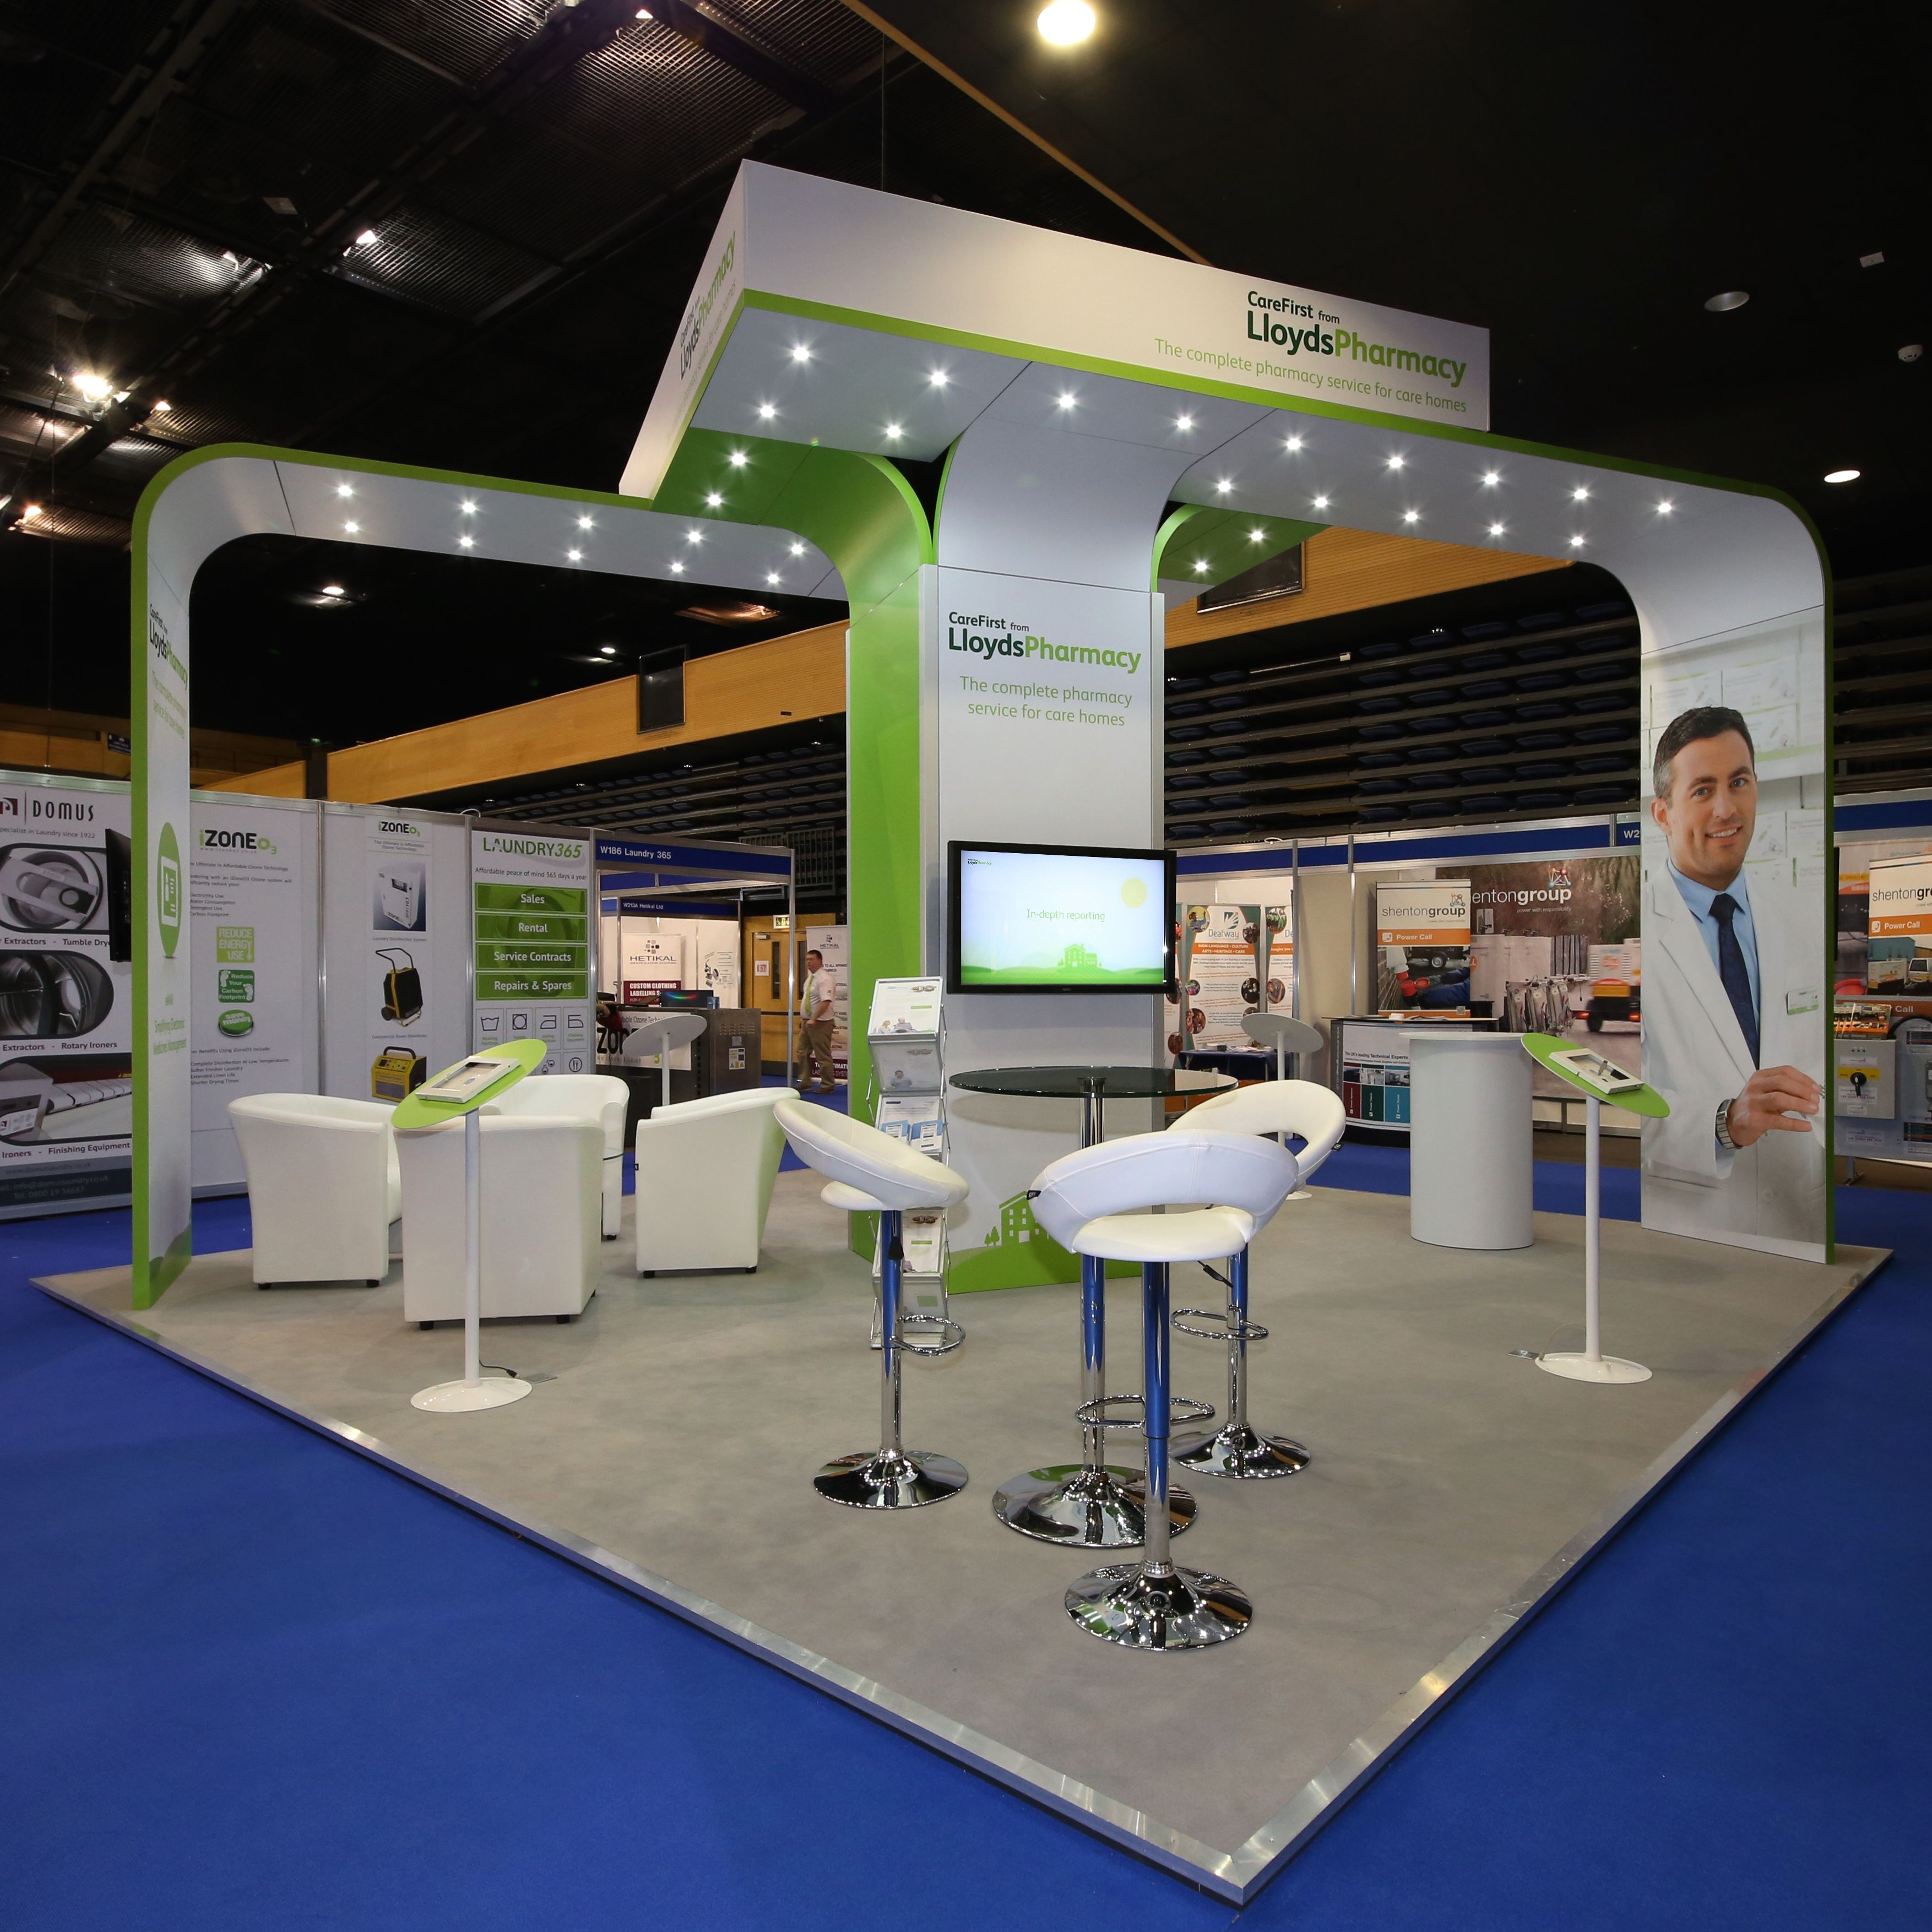 Display Stand For Exhibition : Lloyds pharmacy the care show bournemouth events